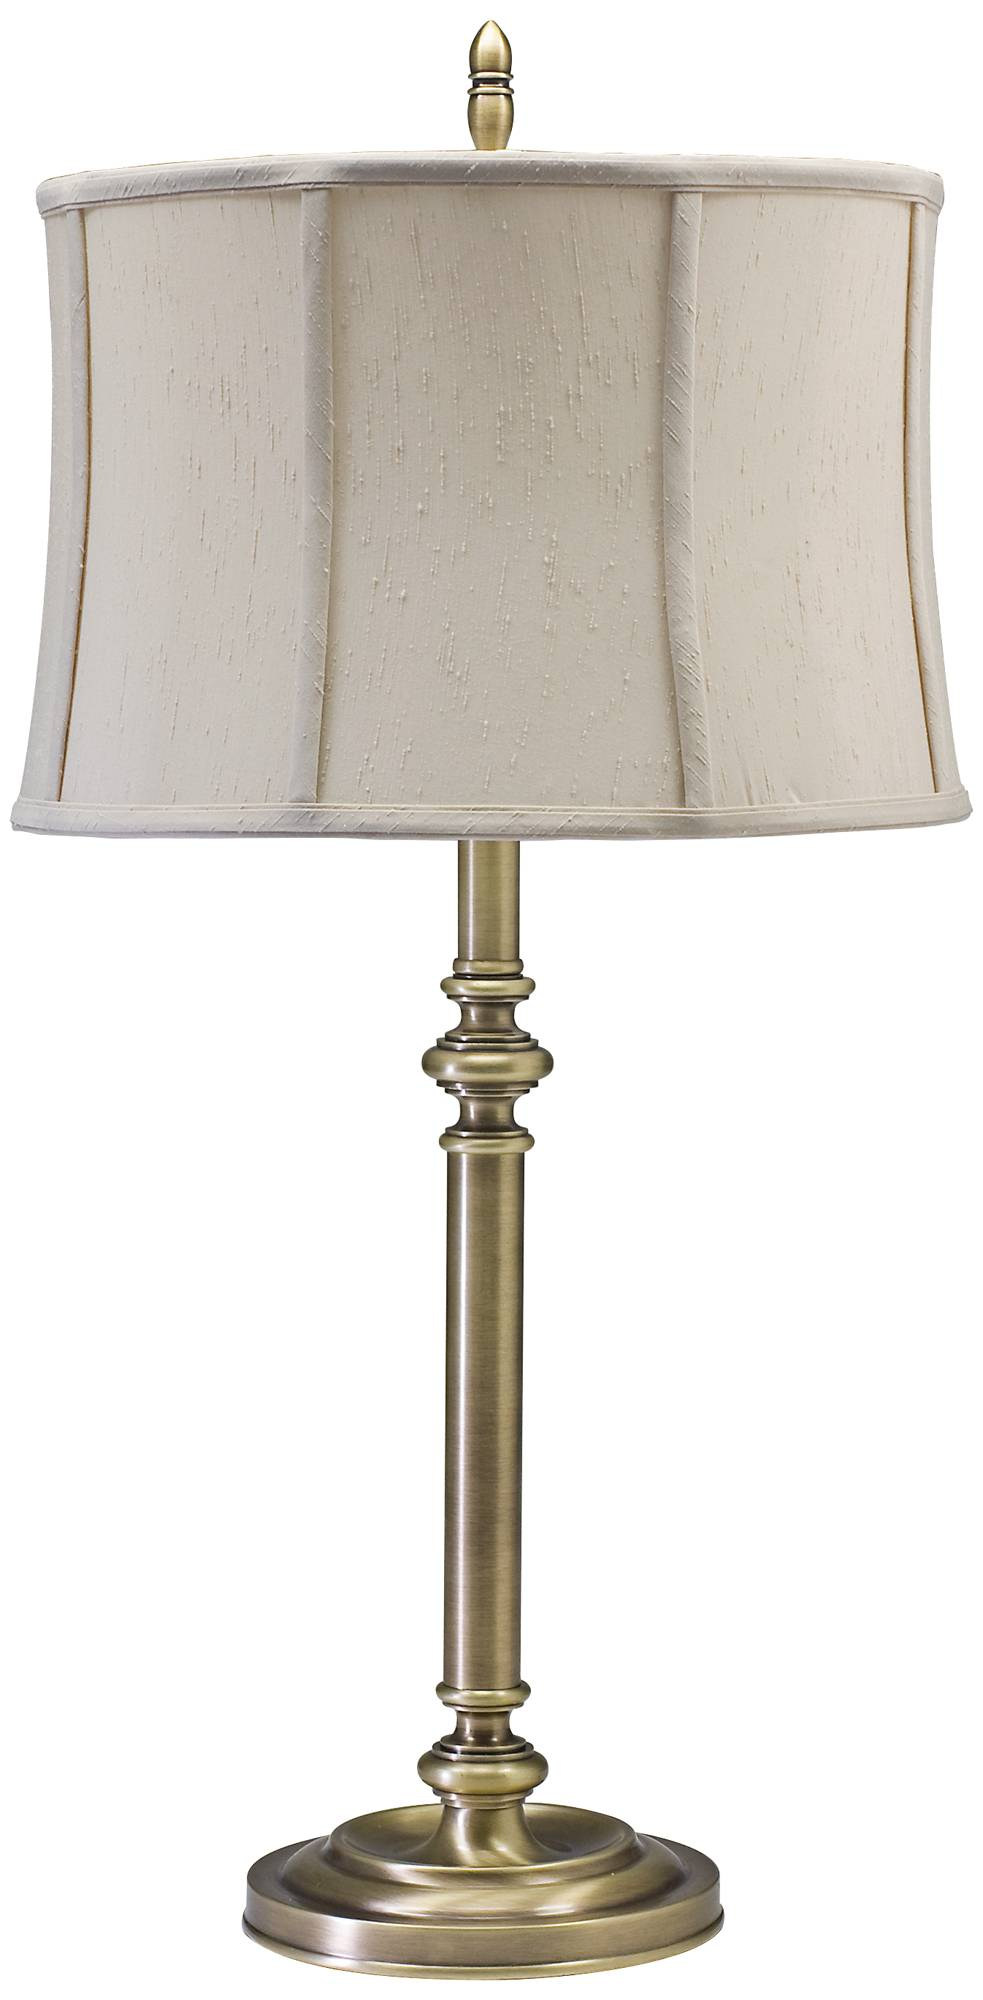 House of troy coach antique brass table lamp